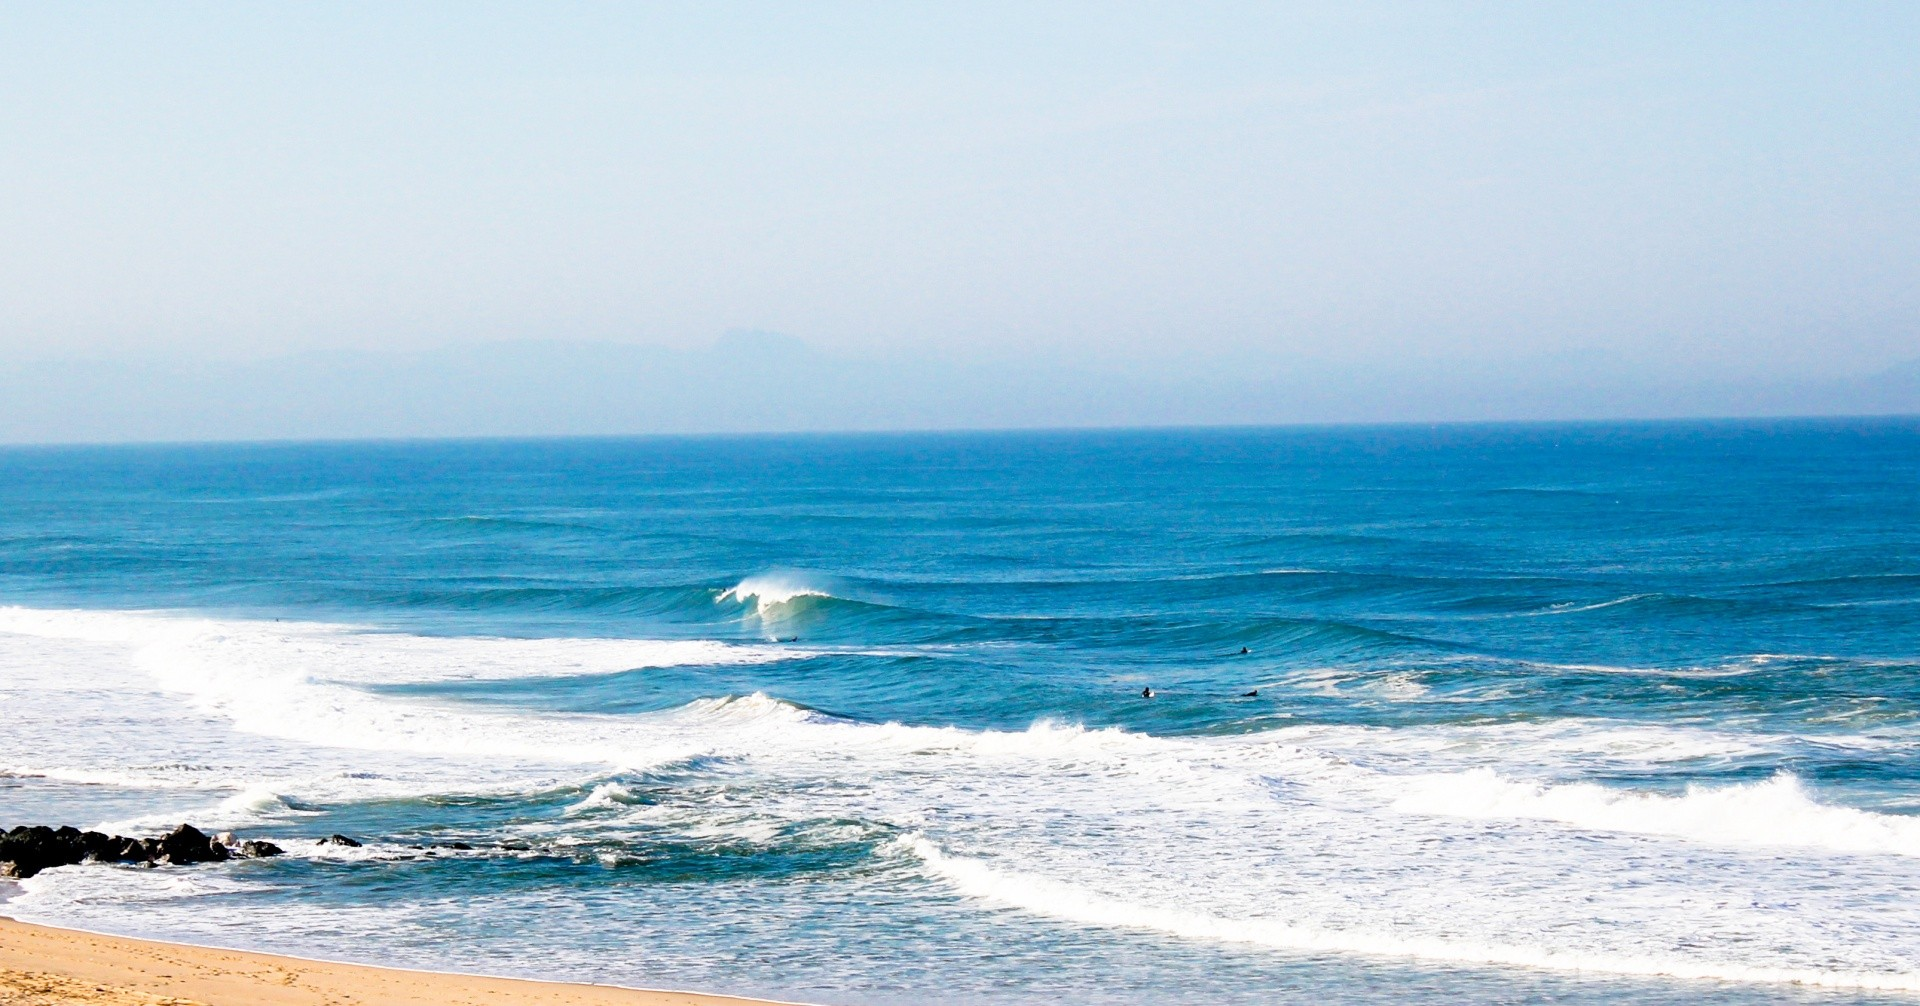 Dan Hunter's photo of Hossegor (La Graviere)